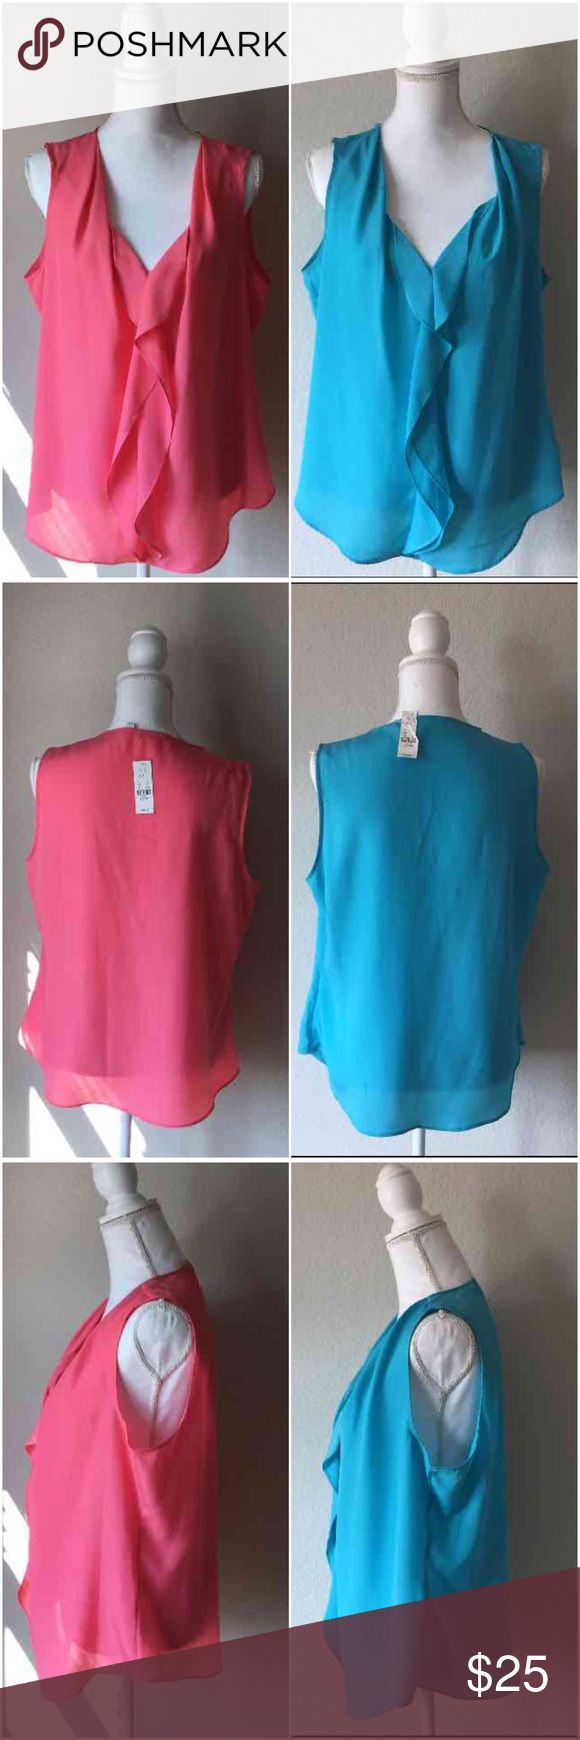 **Bundle Deal NWT NY&CO Sleeveless Blouses 100% Polyester Both XL very cute ruffle blouses. Both are the same exact Blouse NWT just in different colors. They would look super cute with a sweater. One is a sky blue and the other a coral color. New York & Company Tops Blouses